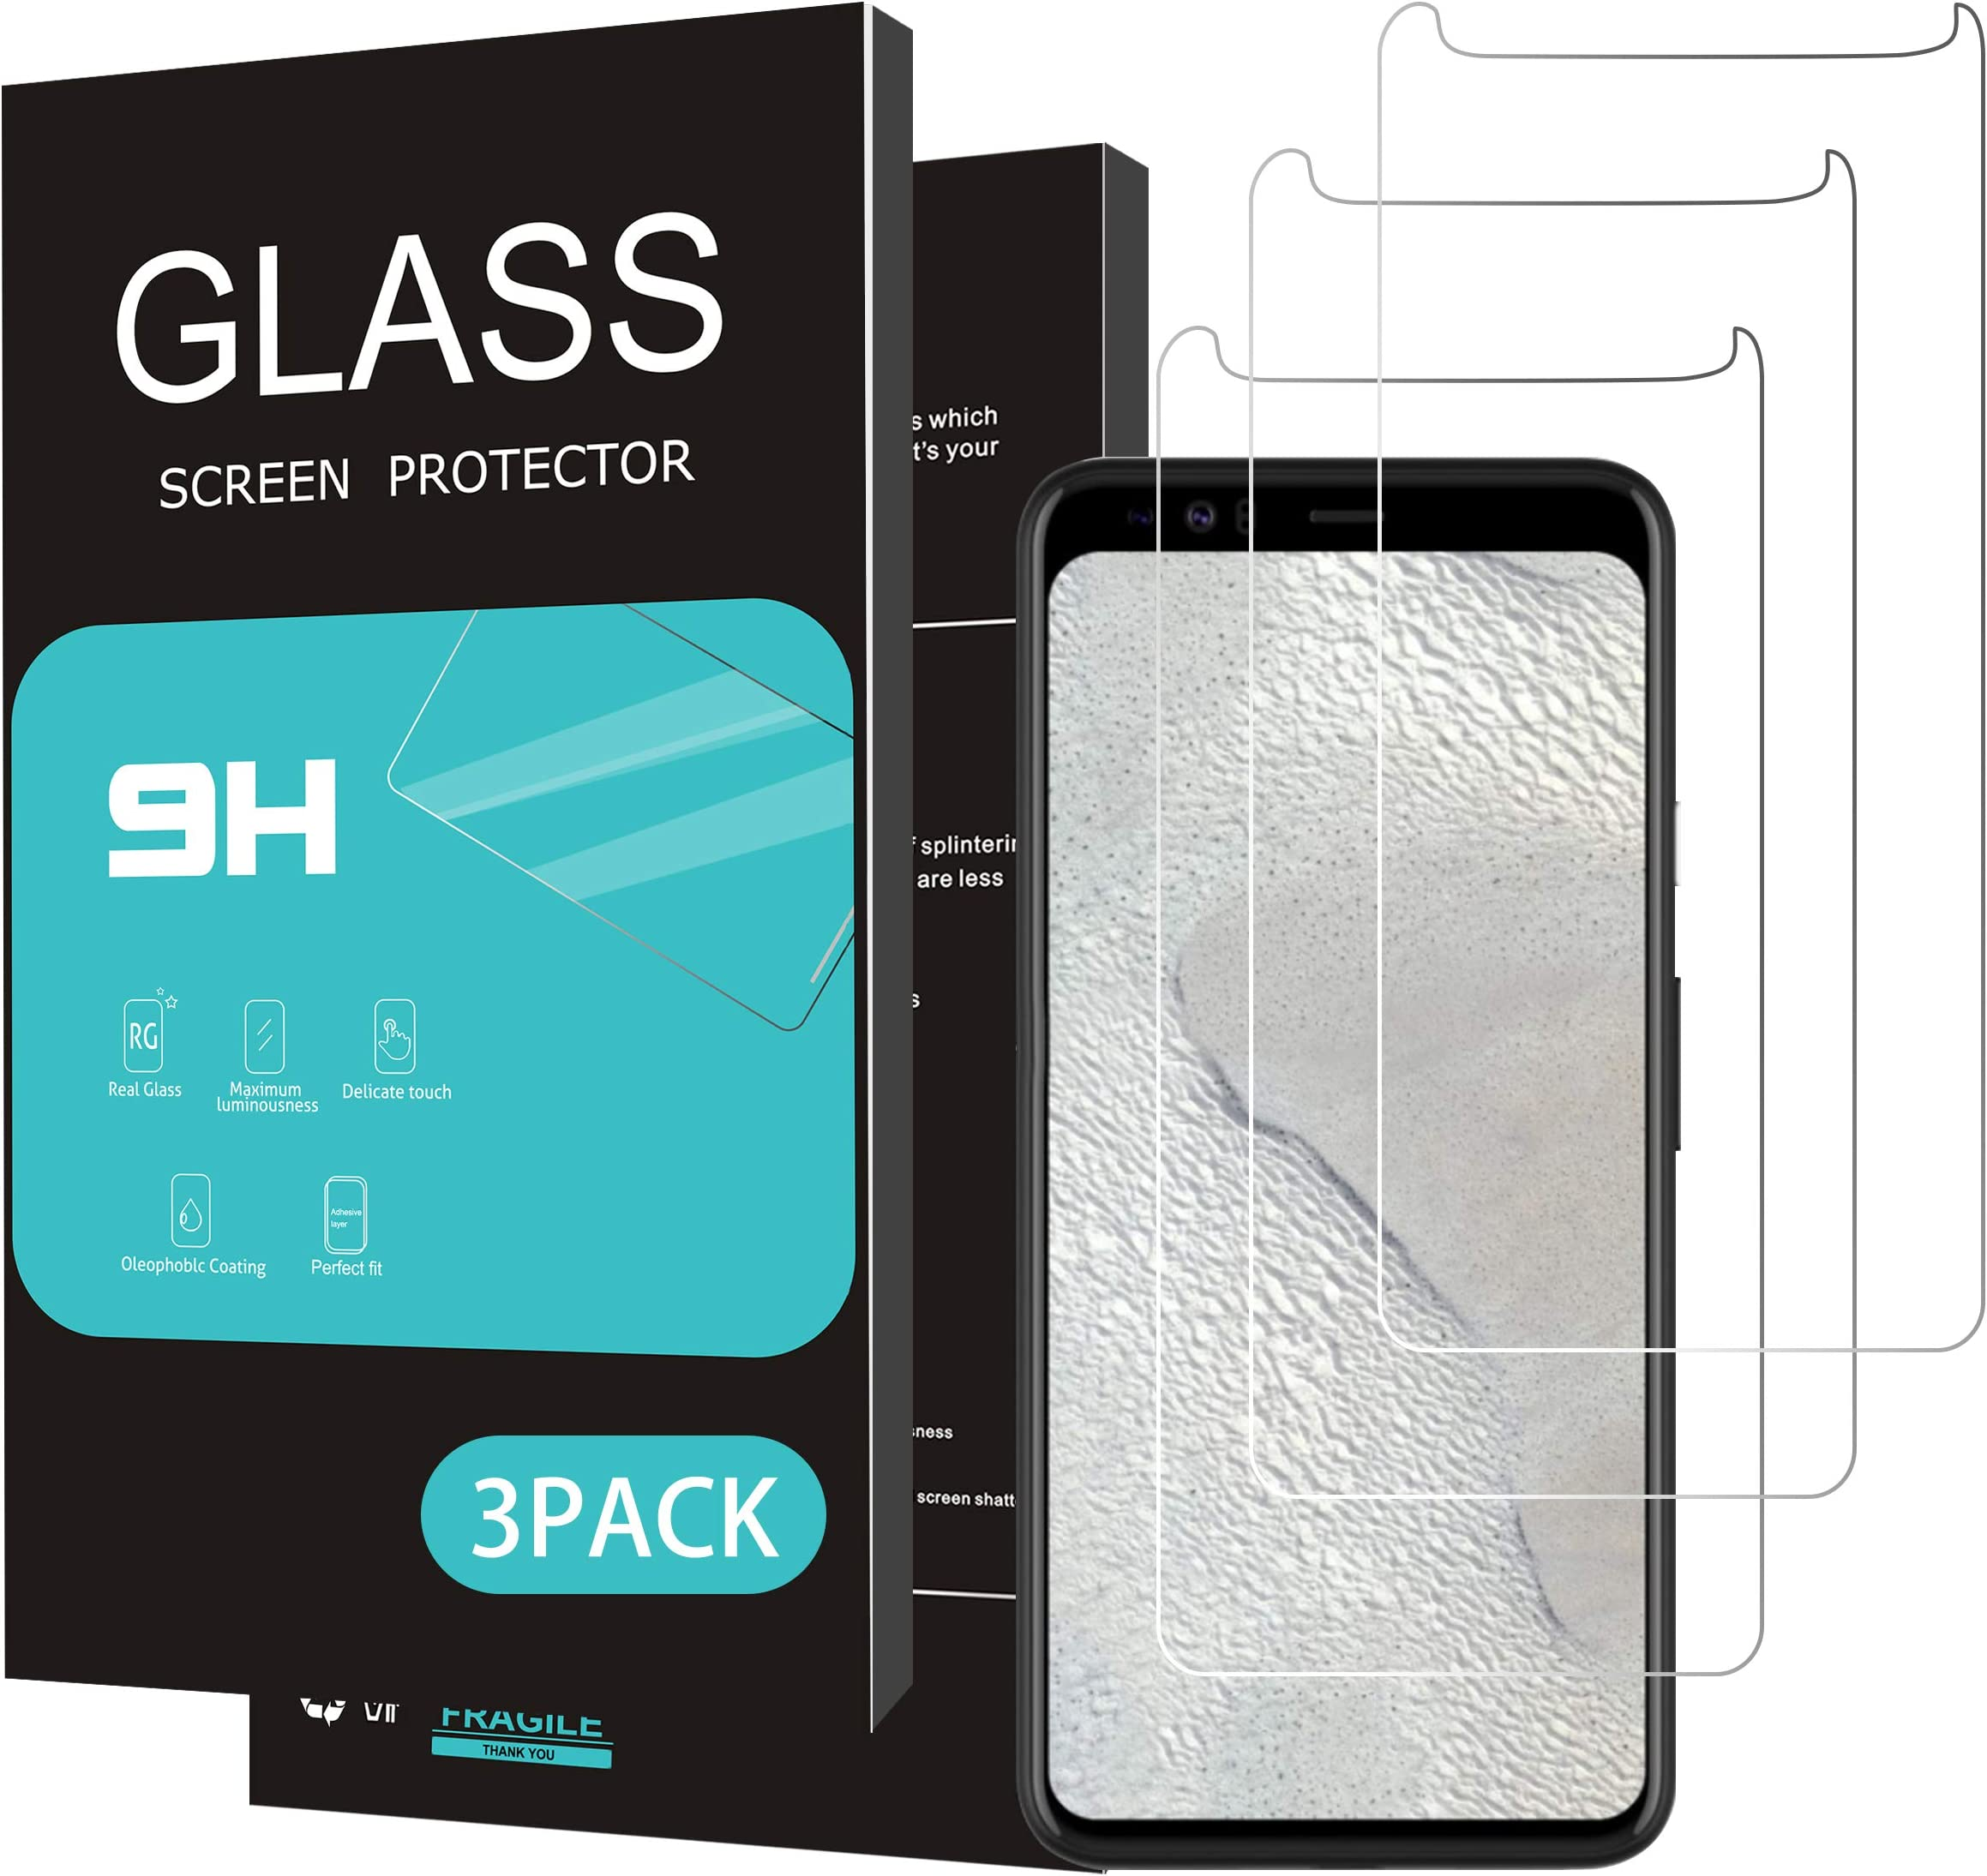 Homemo Screen Protector for Google Pixel 4XL 3Pack 2.5D Edge Tempered Glass for Google Pixel 4XL Anti Scratch Case Friendly